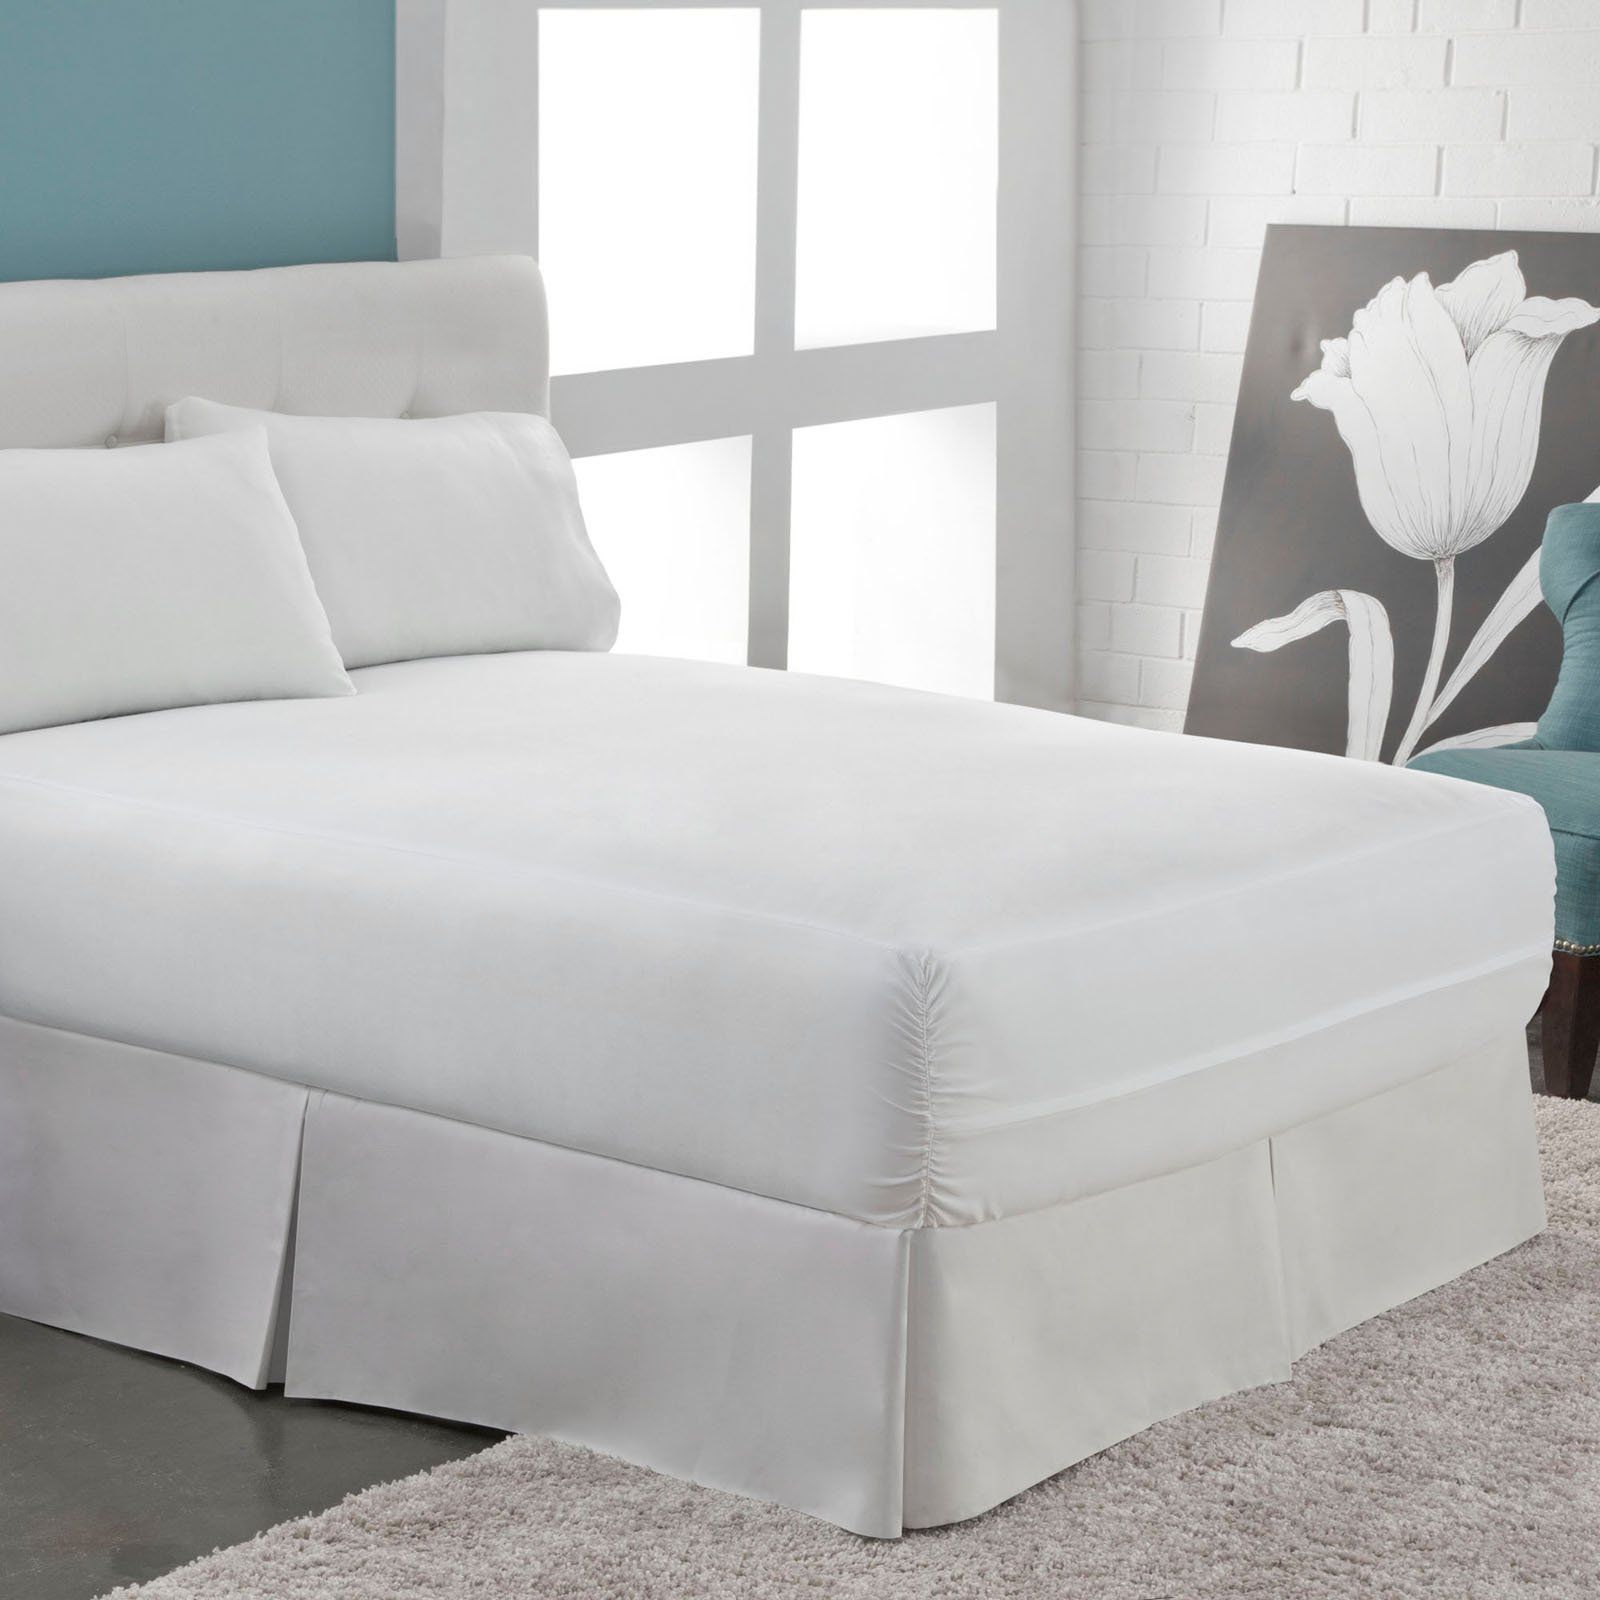 Aller Free SixSided Mattress Encasement by Perfect Fit